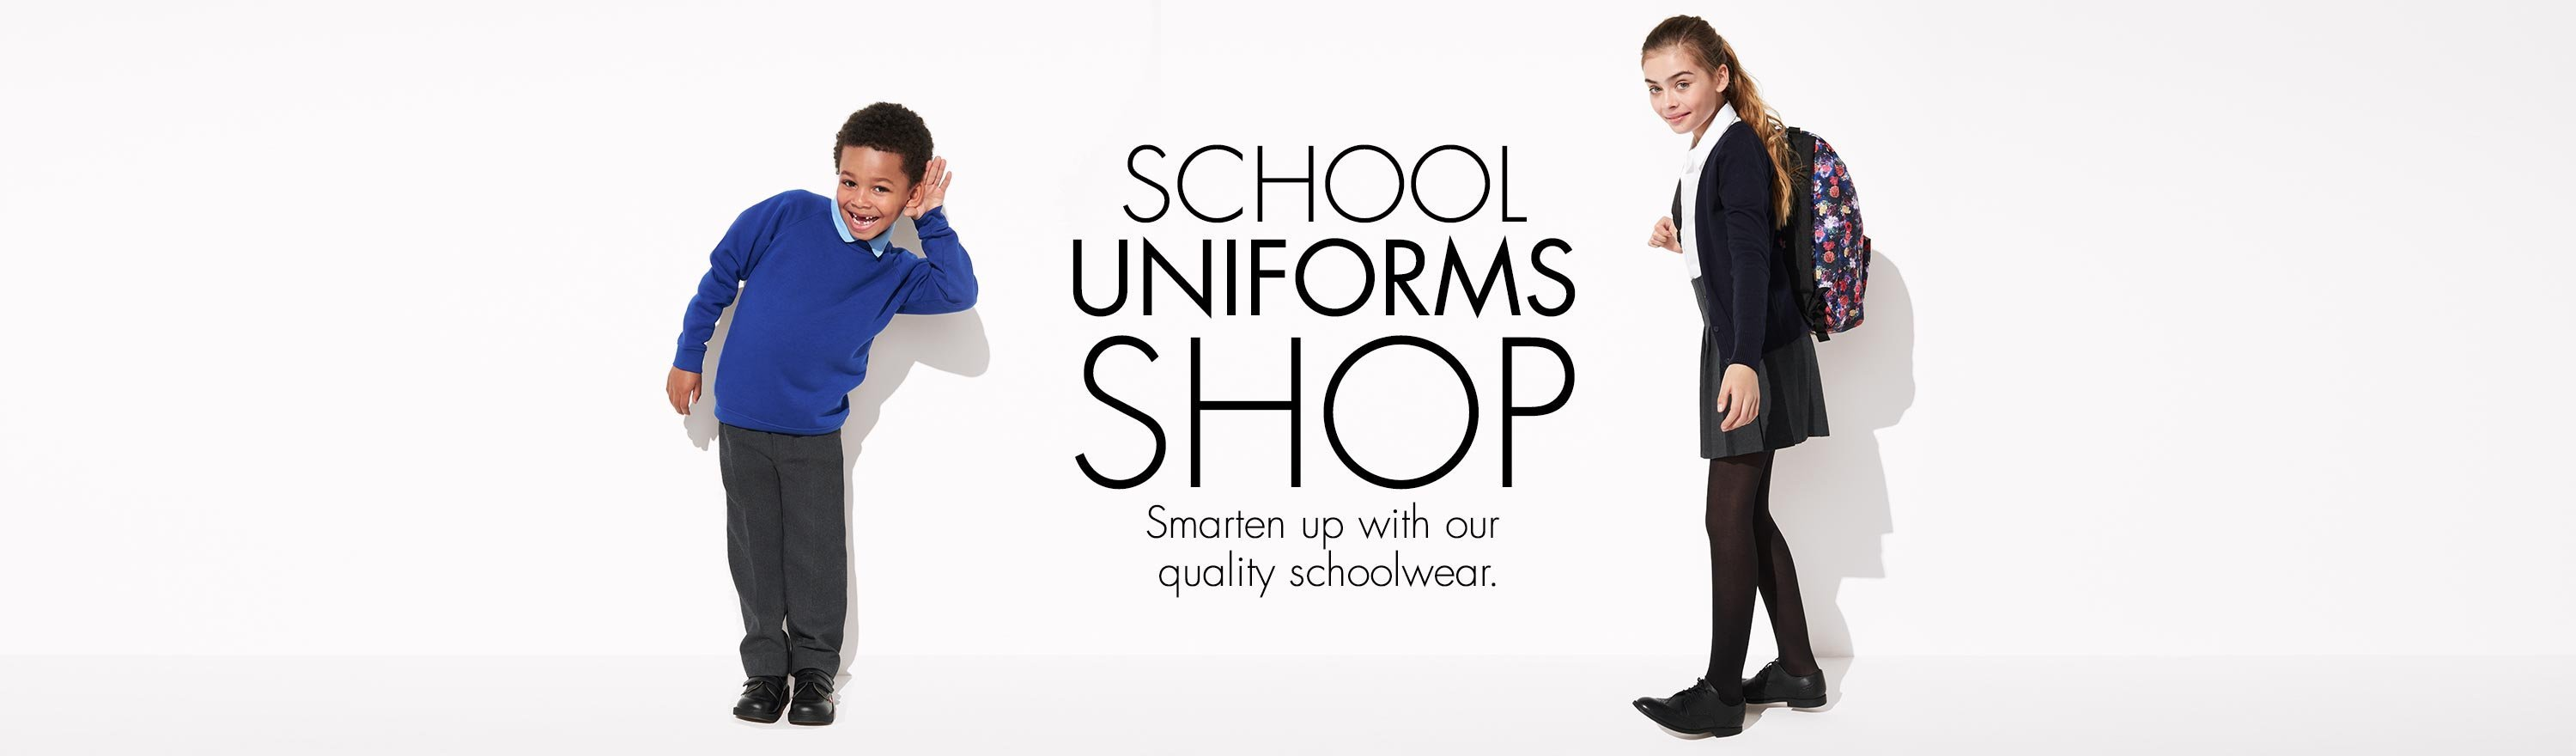 School Uniforms Shop - Smarten up with our quality schoolwear.